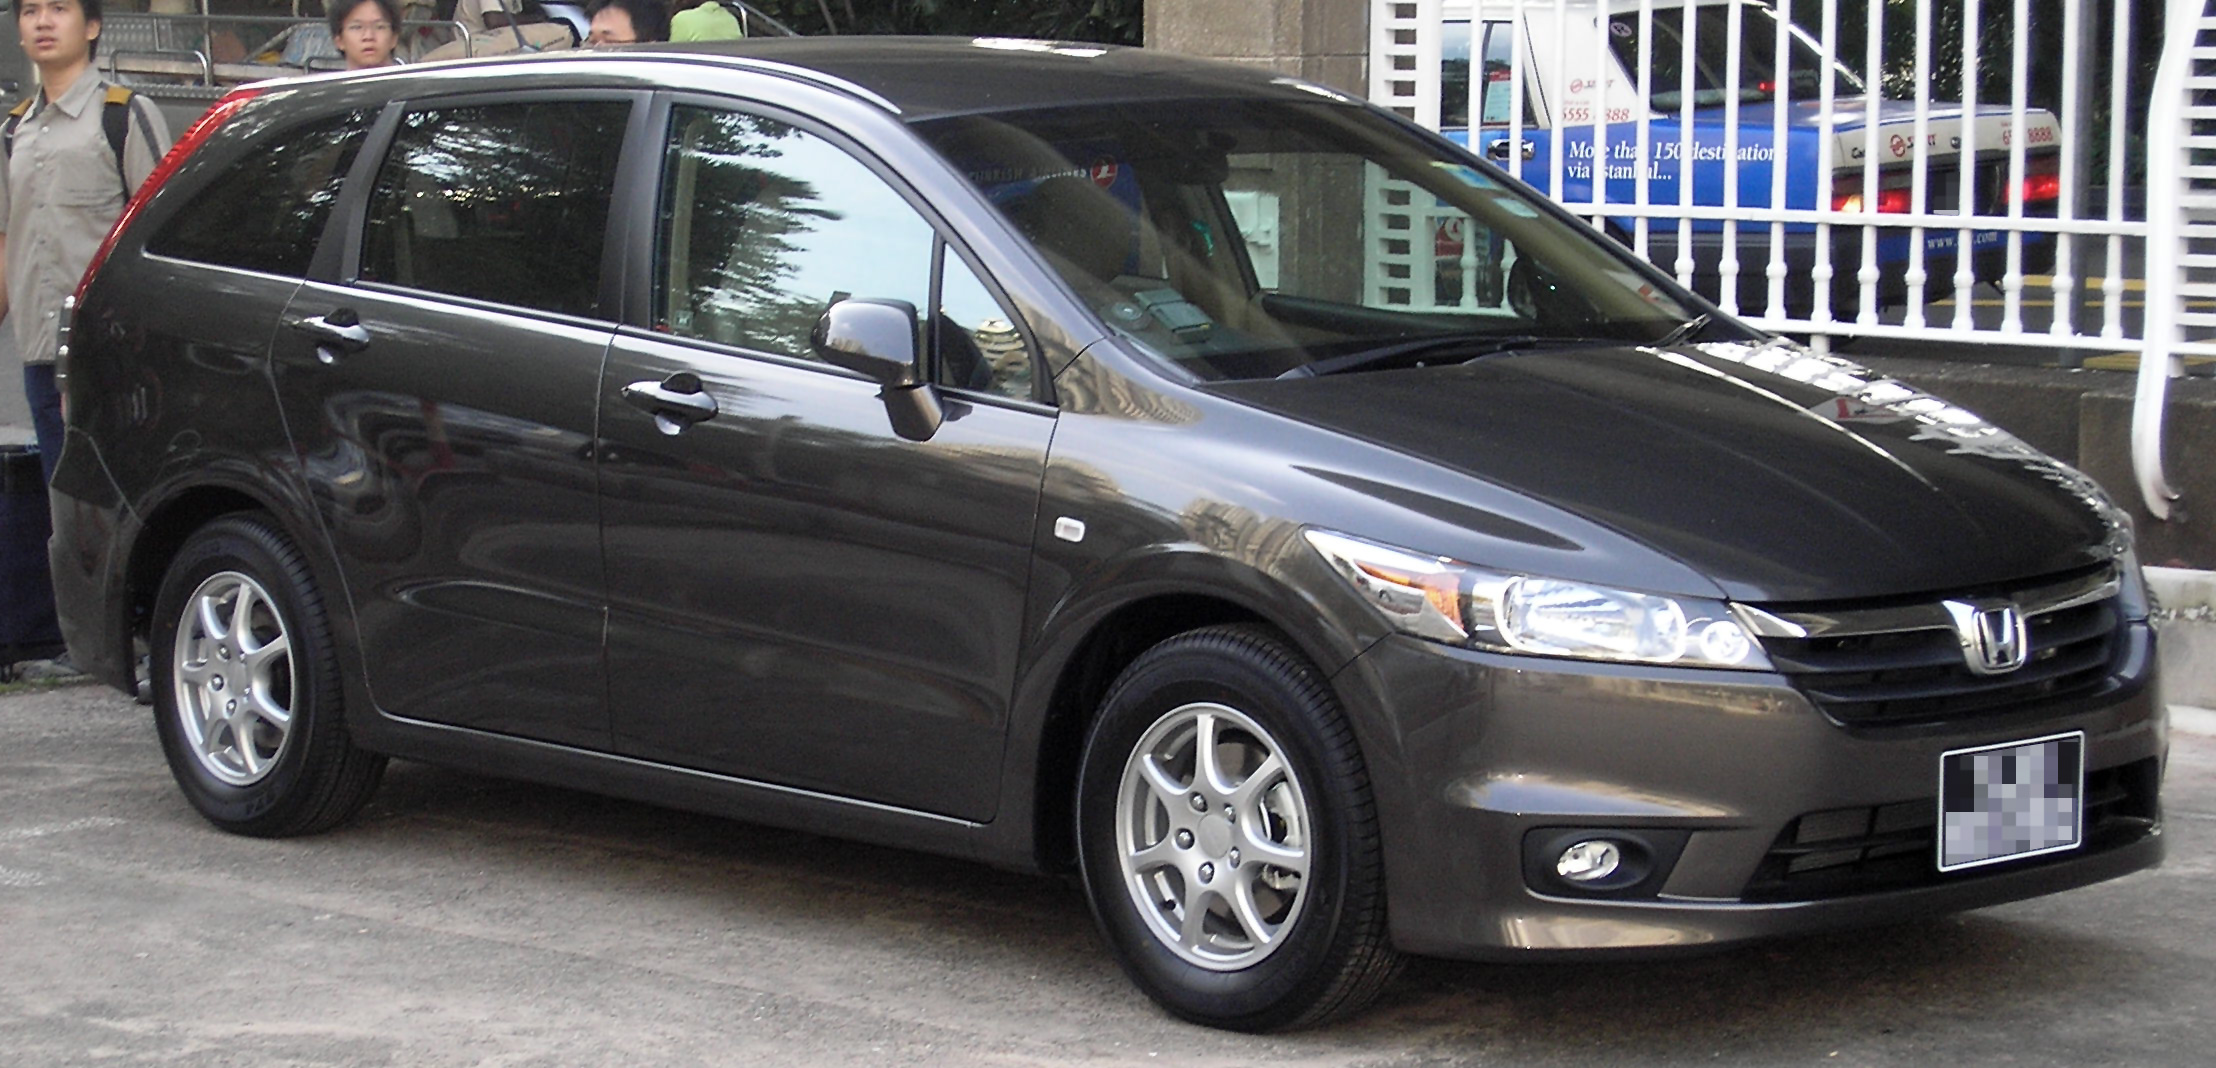 File:Honda Stream (second generation) (front), Singapore.jpg